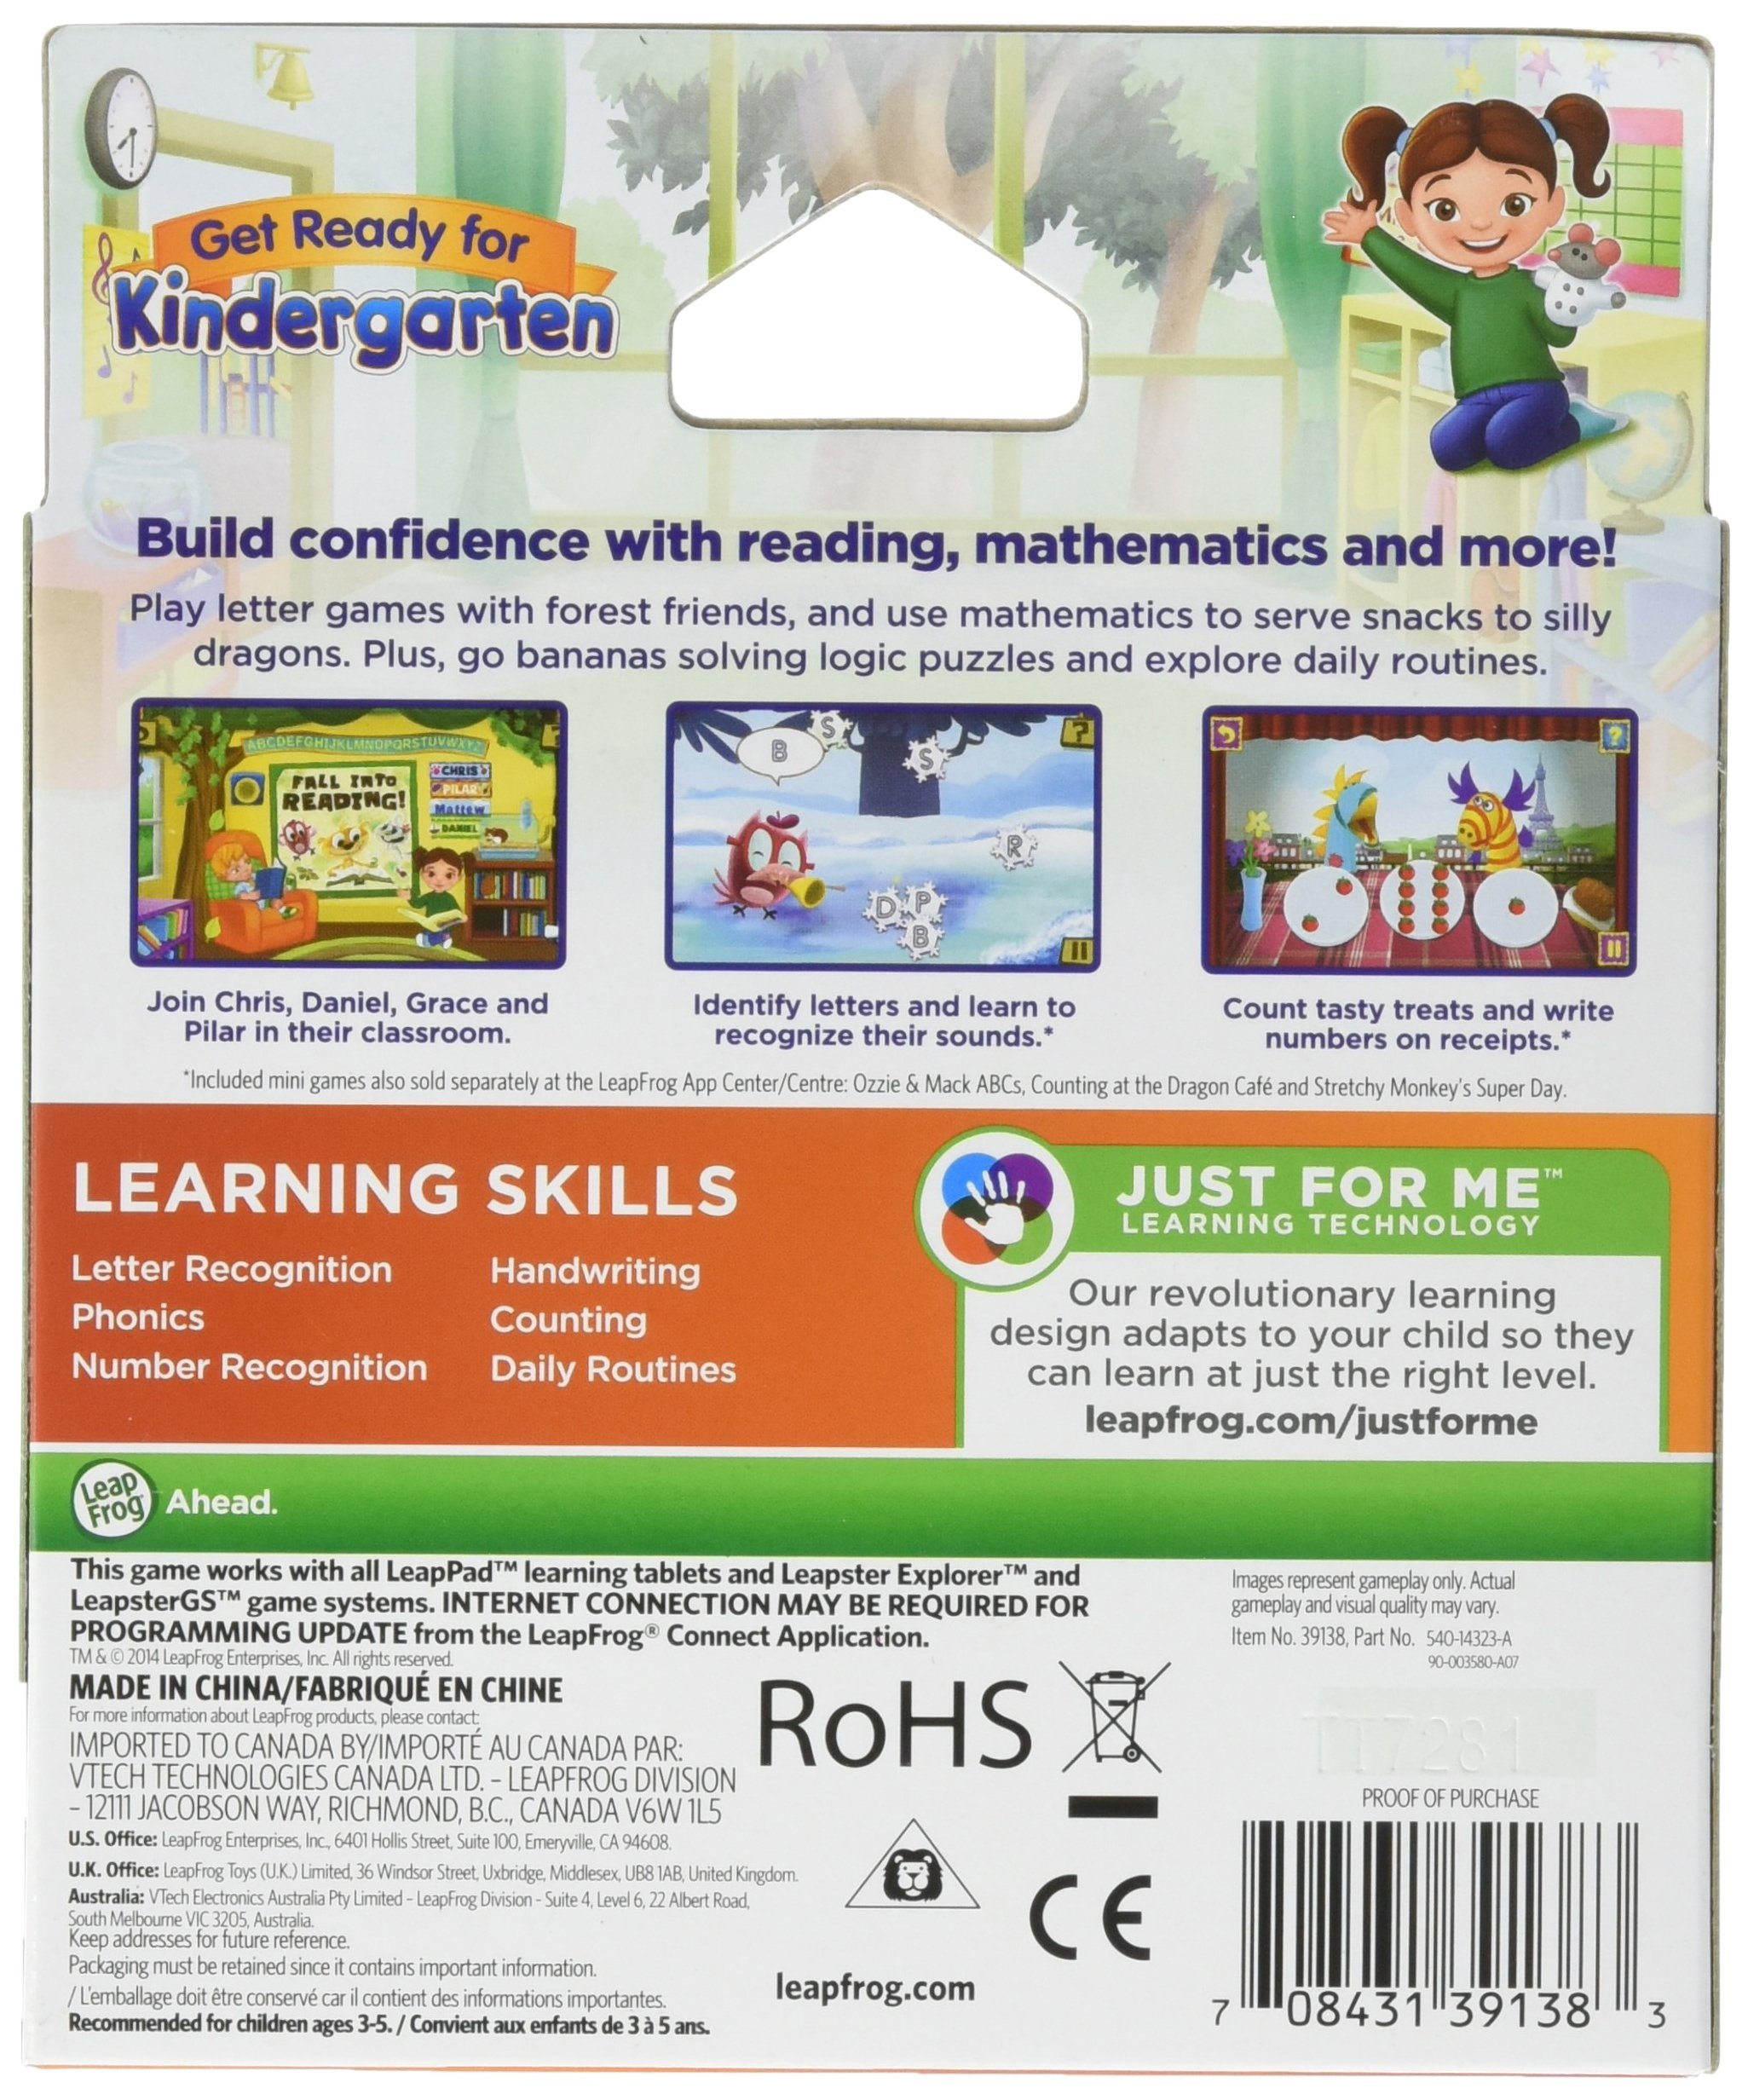 LeapFrog Learning Game: Get Ready for Kindergarten (for LeapPad Ultra, LeapPad1, LeapPad2, Leapster Explorer, LeapsterGS Explorer) by LeapFrog (Image #2)